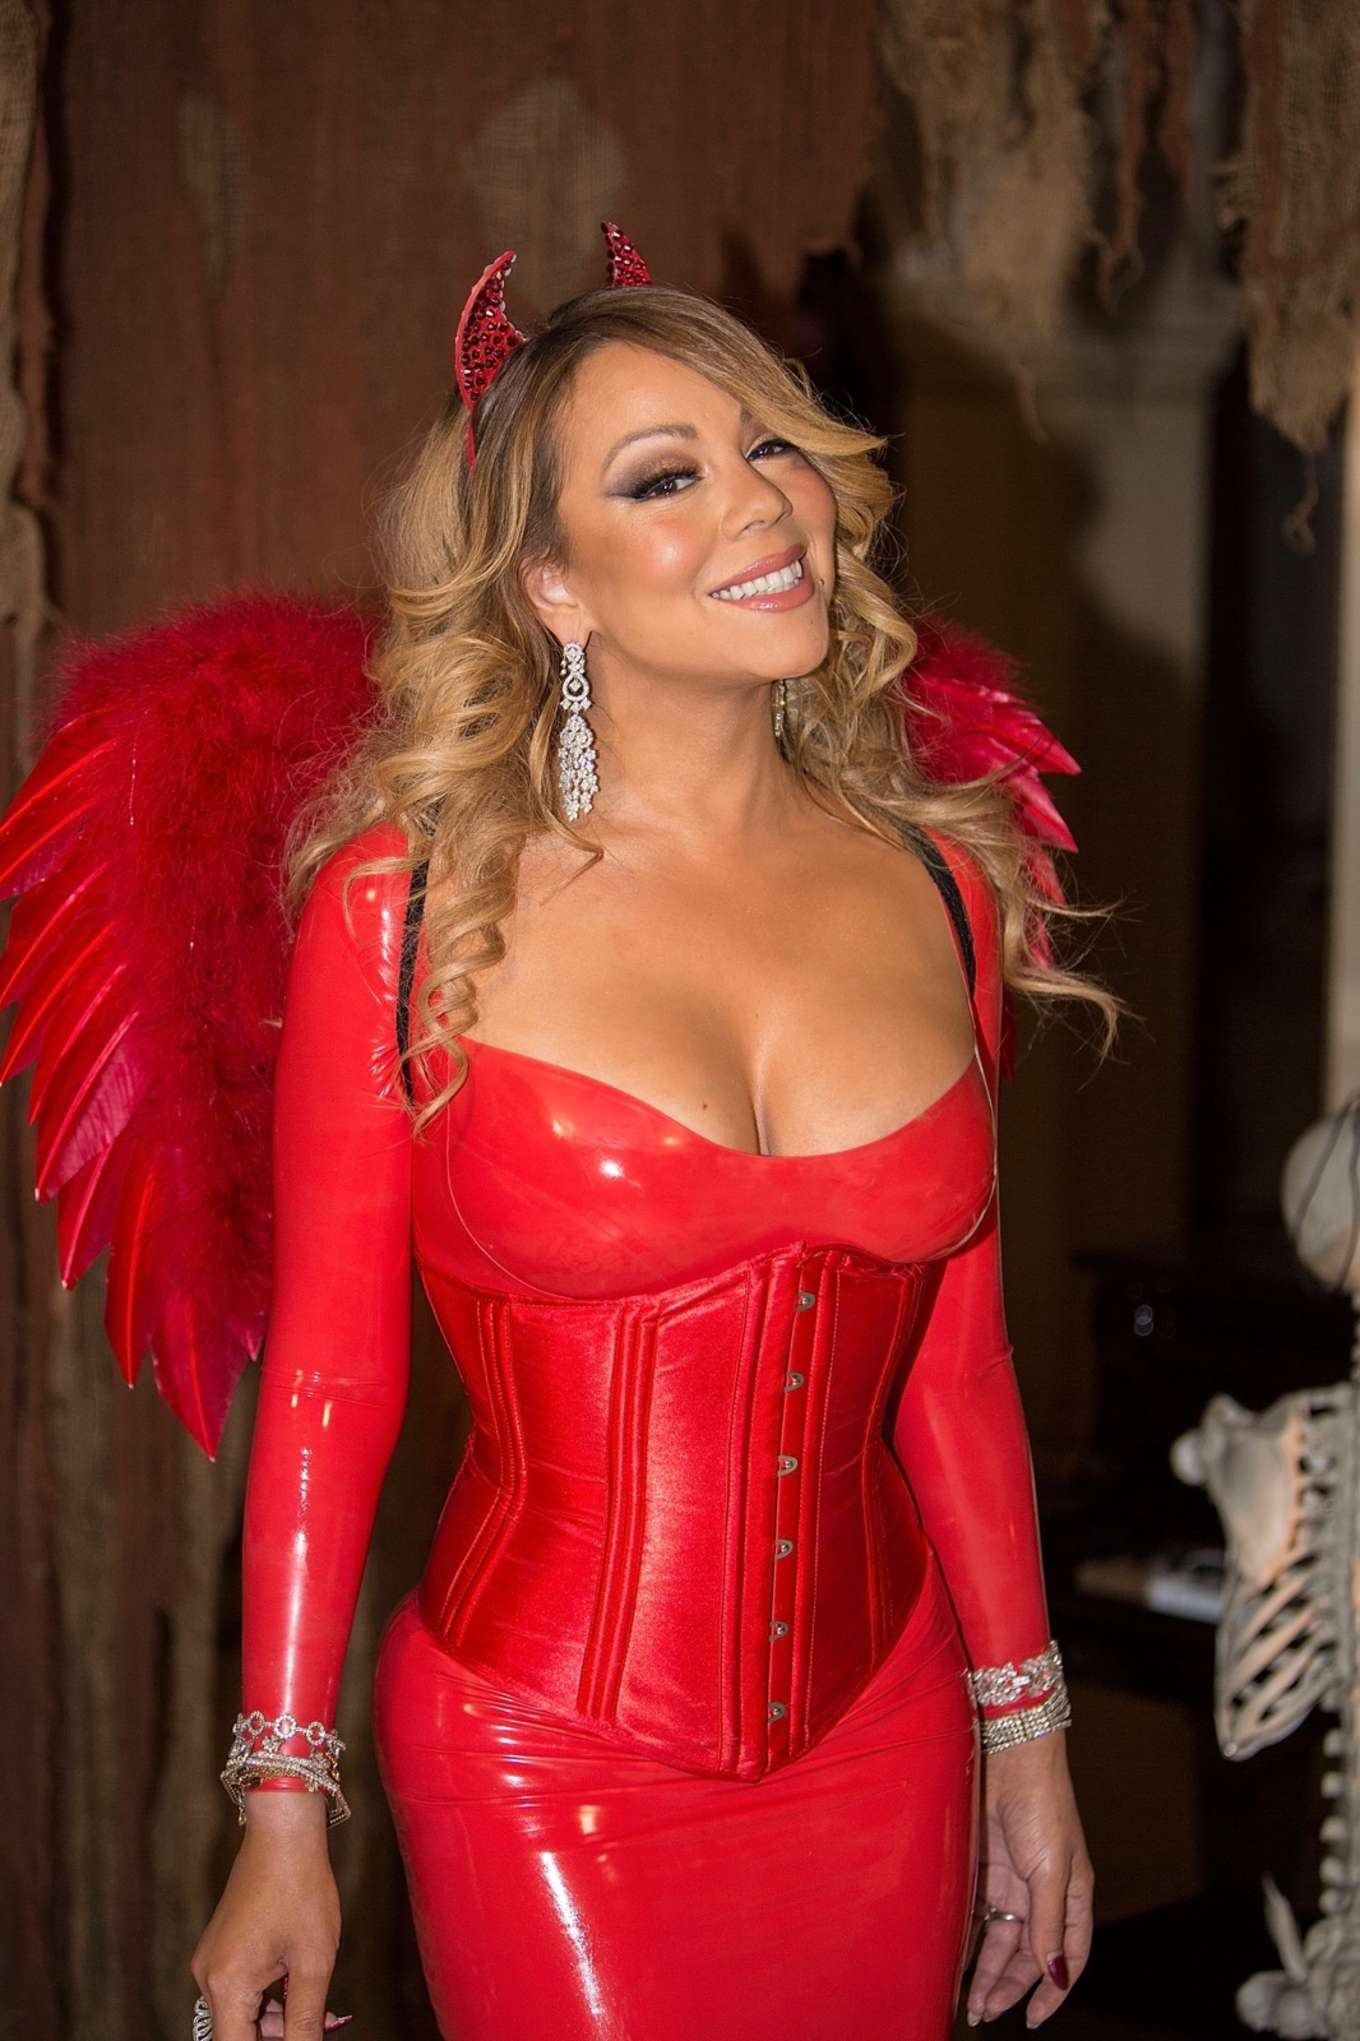 Mariah Carey in Red at Hollywood Halloween Party -07 - GotCeleb